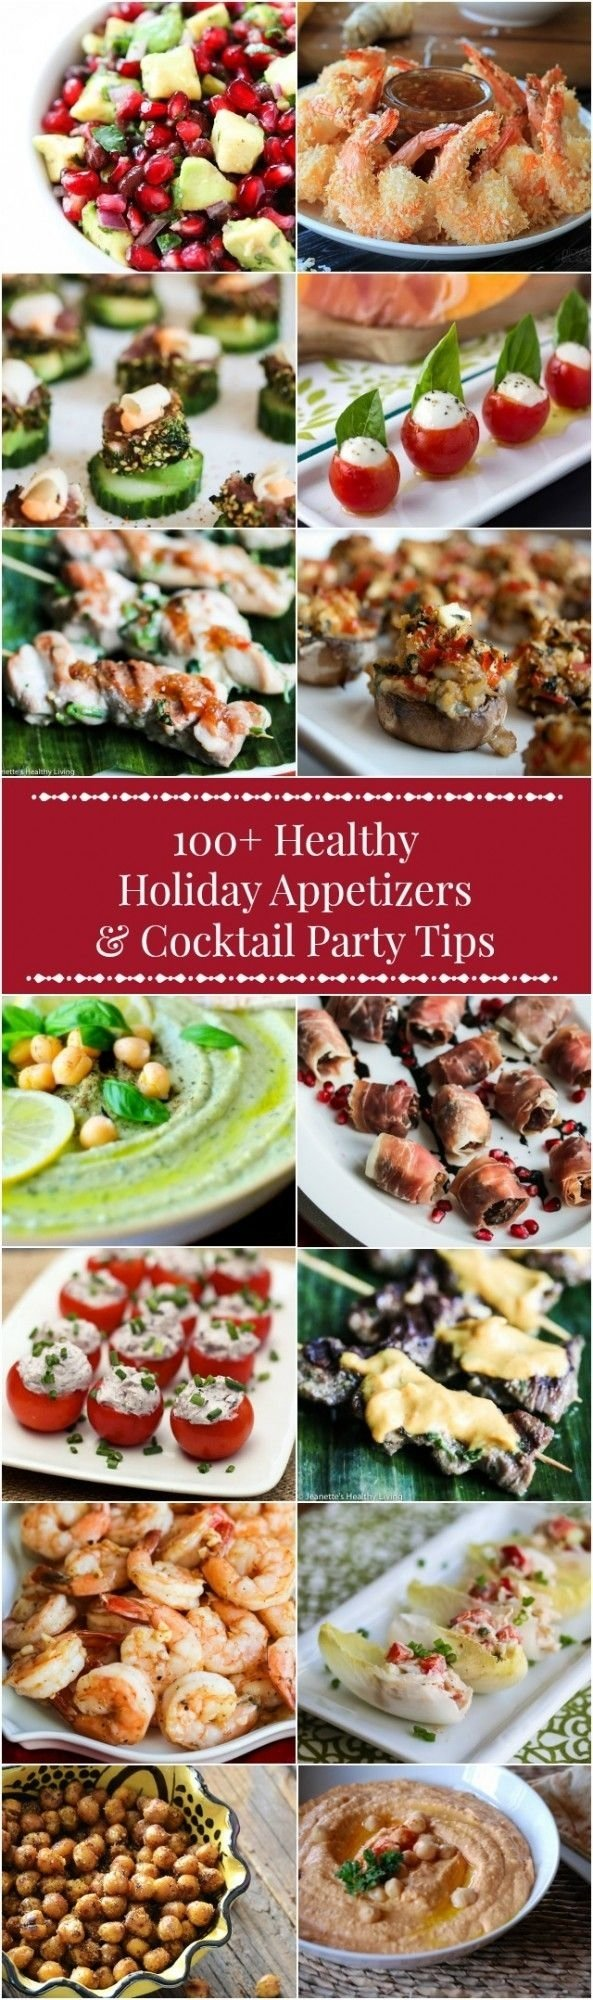 10 Attractive Dinner Party Menu Ideas For 20 47457 best fun foods images on pinterest kitchens cooking food